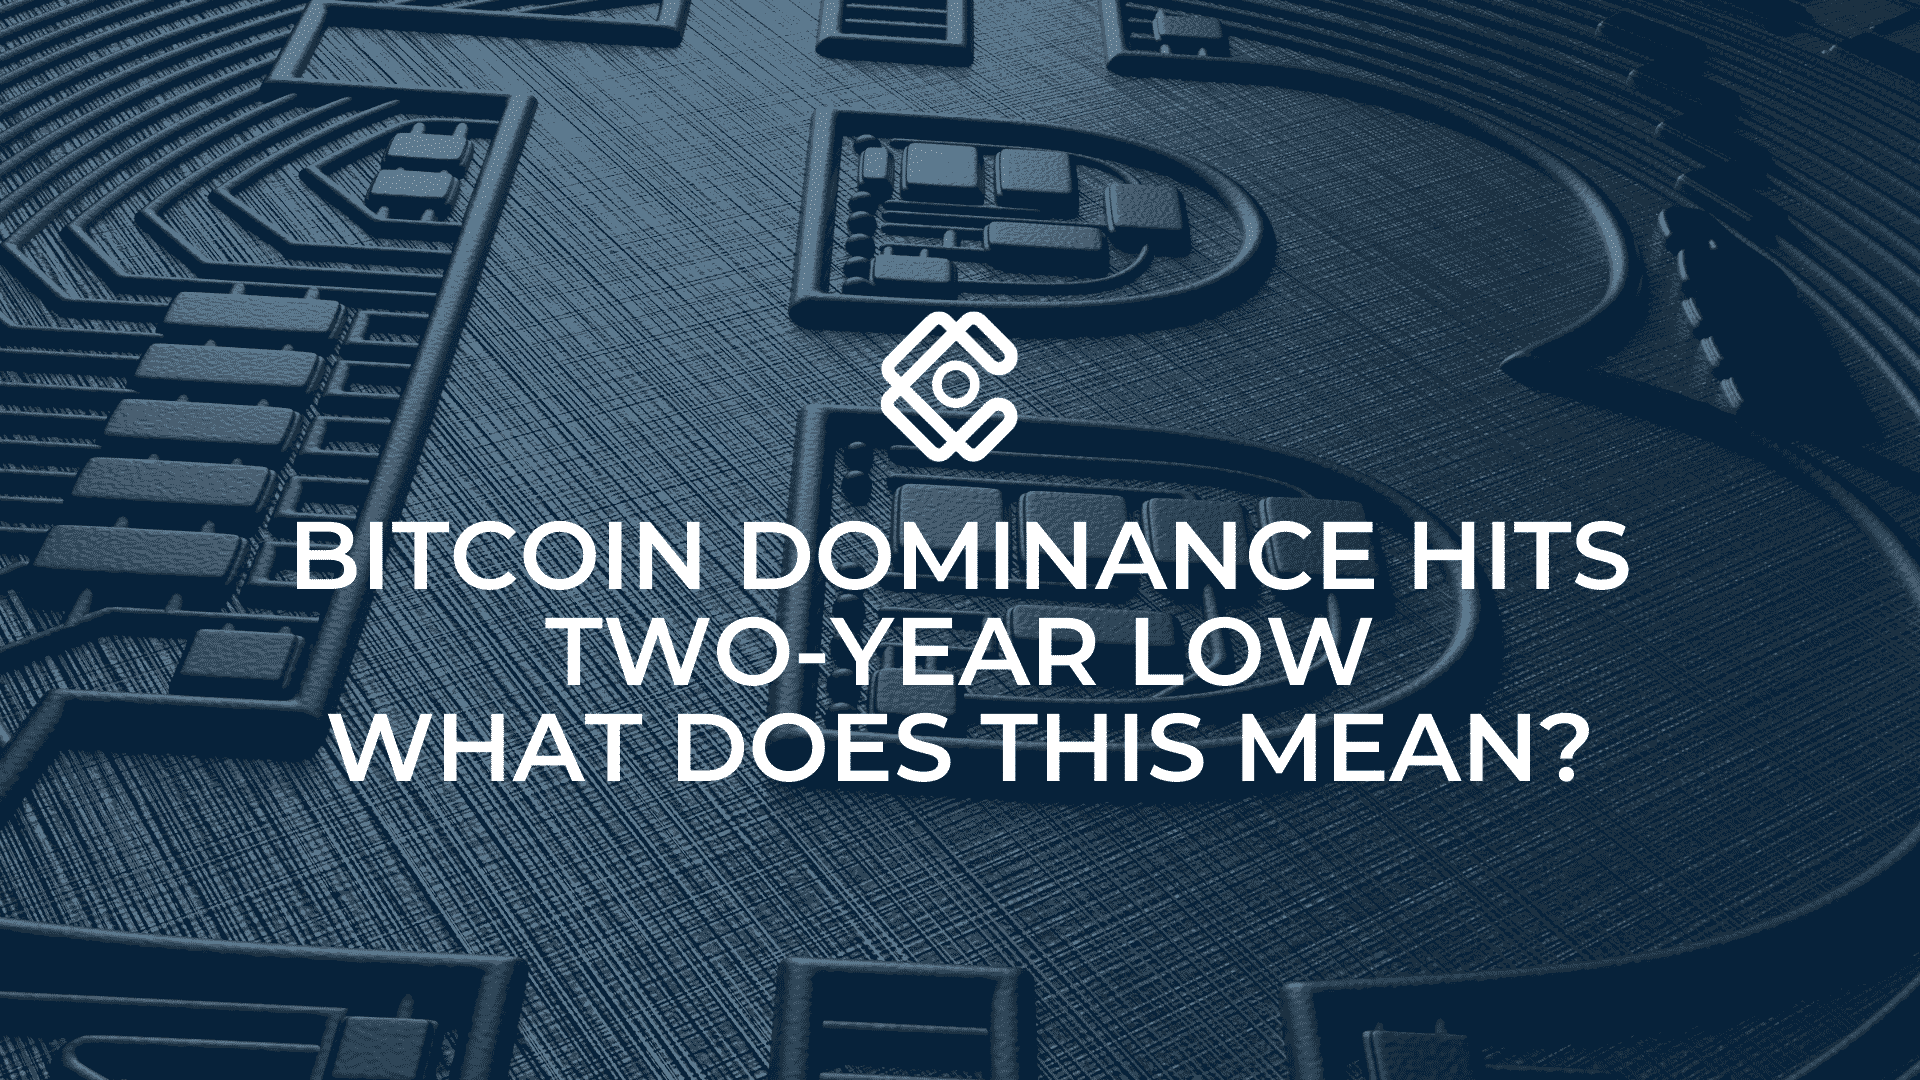 Bitcoin dominance hits two-year low. What does this mean?